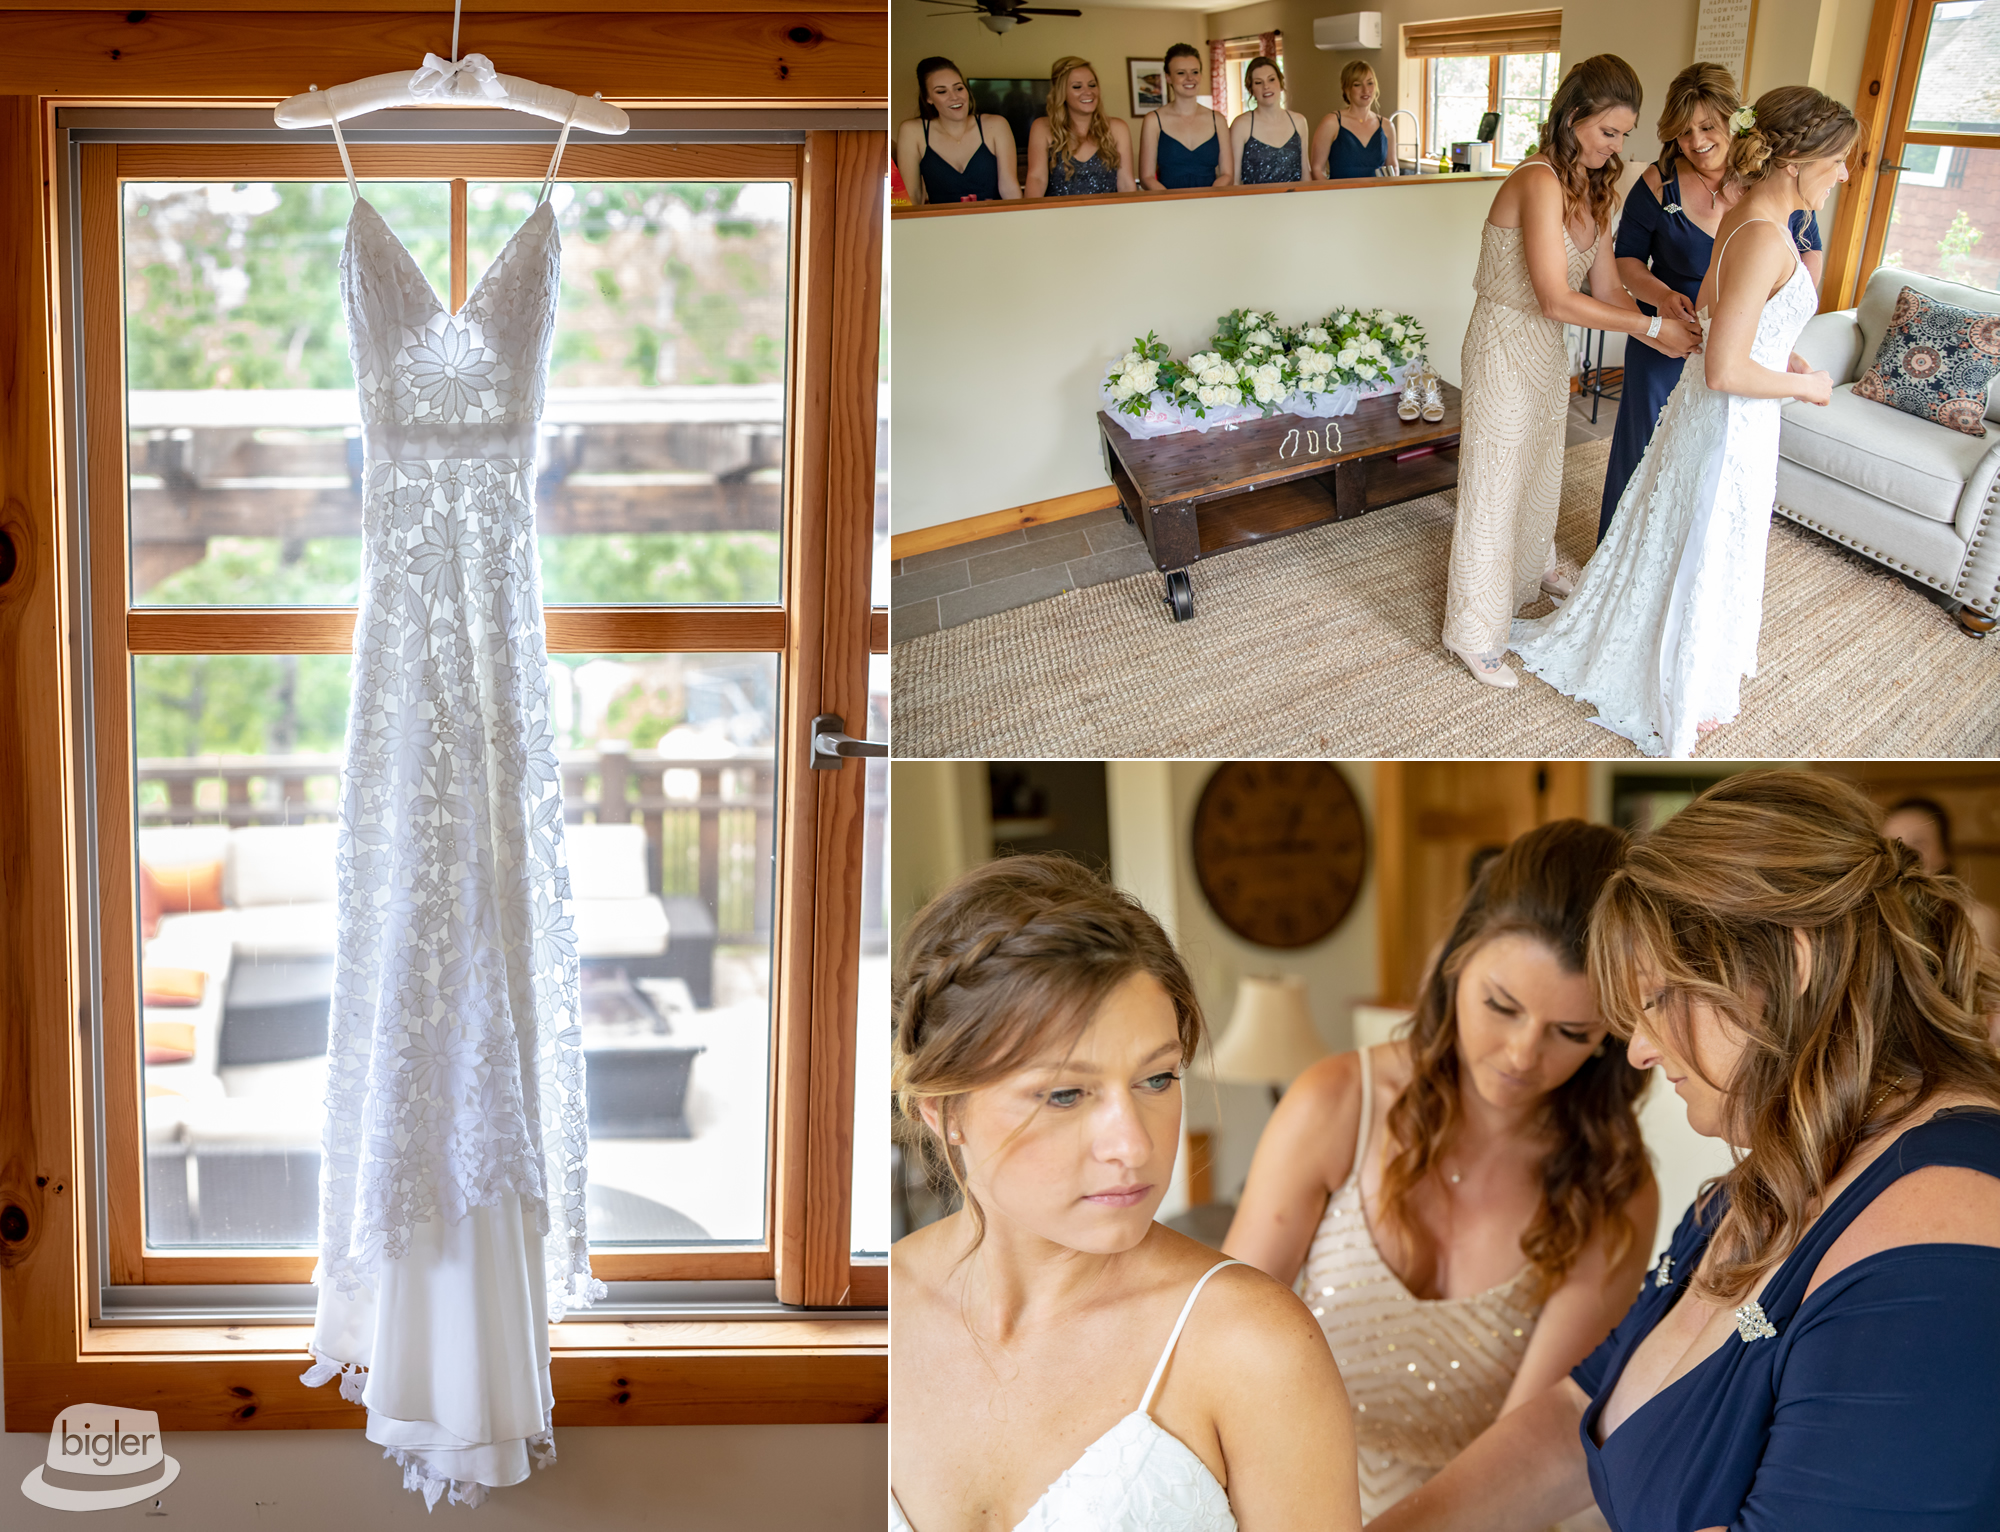 20180616_-_10_-_Lake_Placid_Wedding